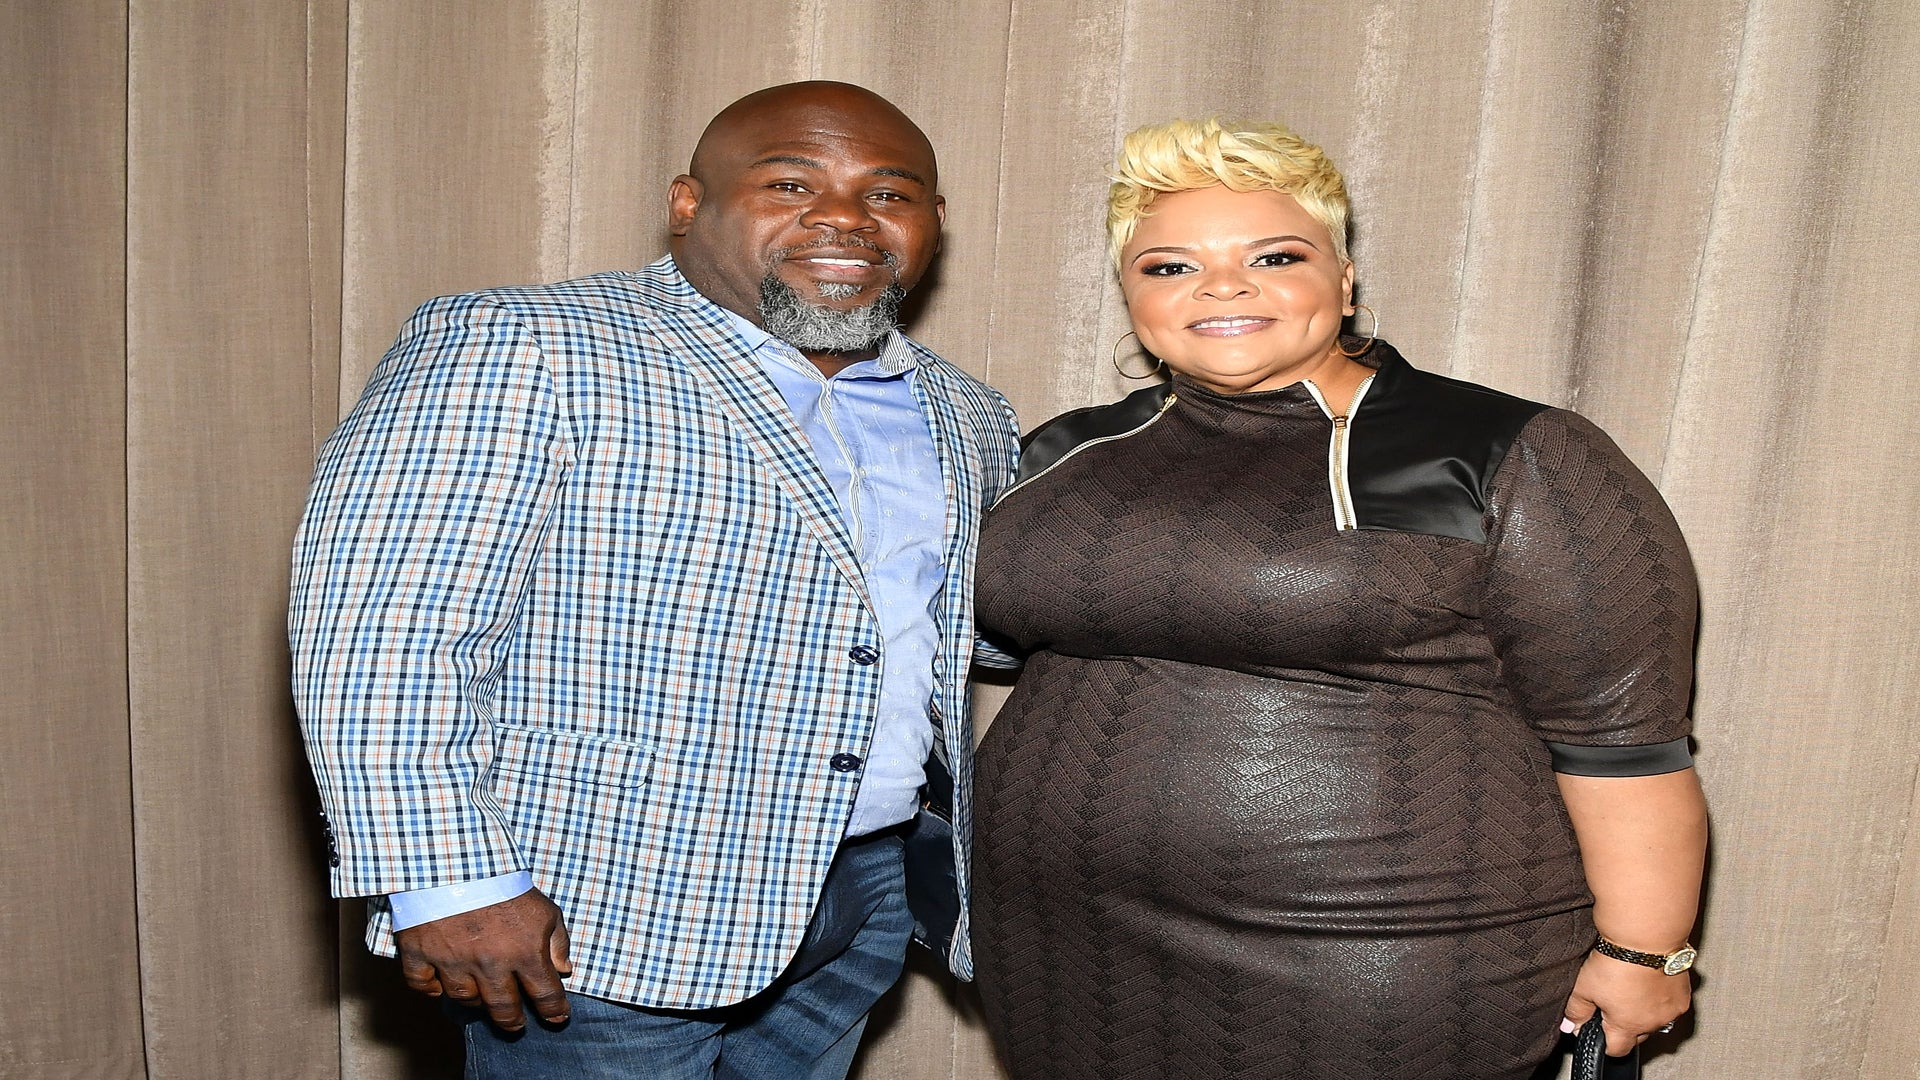 Still Going Strong! David And Tamela Mann Celebrate Their 30th Wedding Anniversary